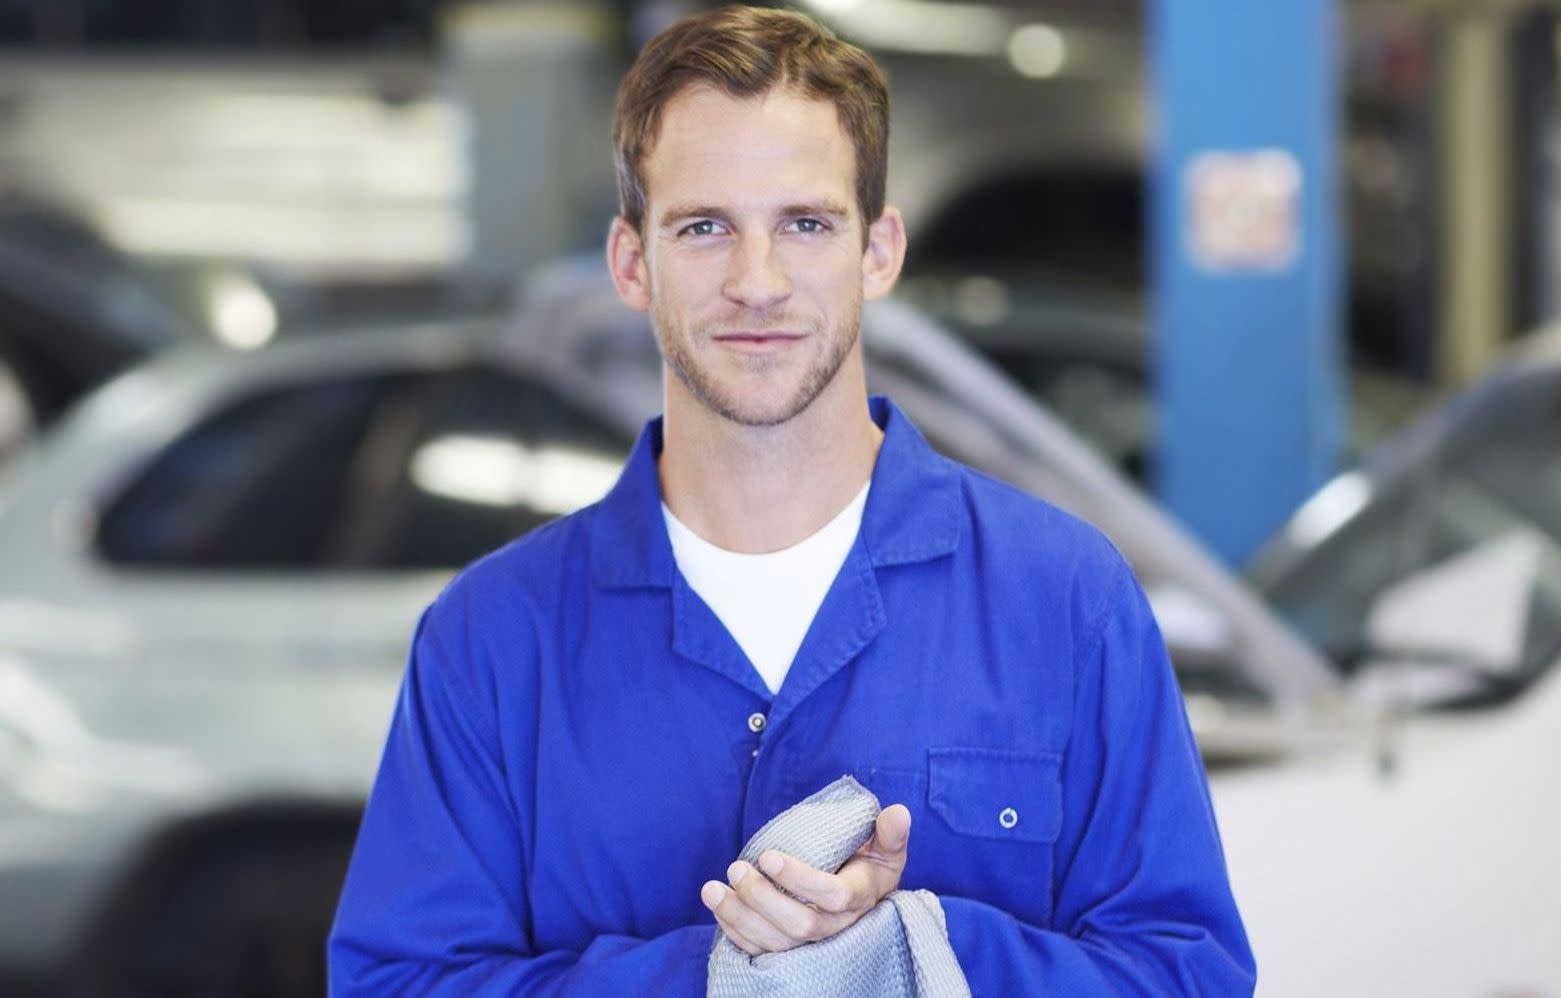 Automotive Air Conditioner Repair Service near Lebanon, PA